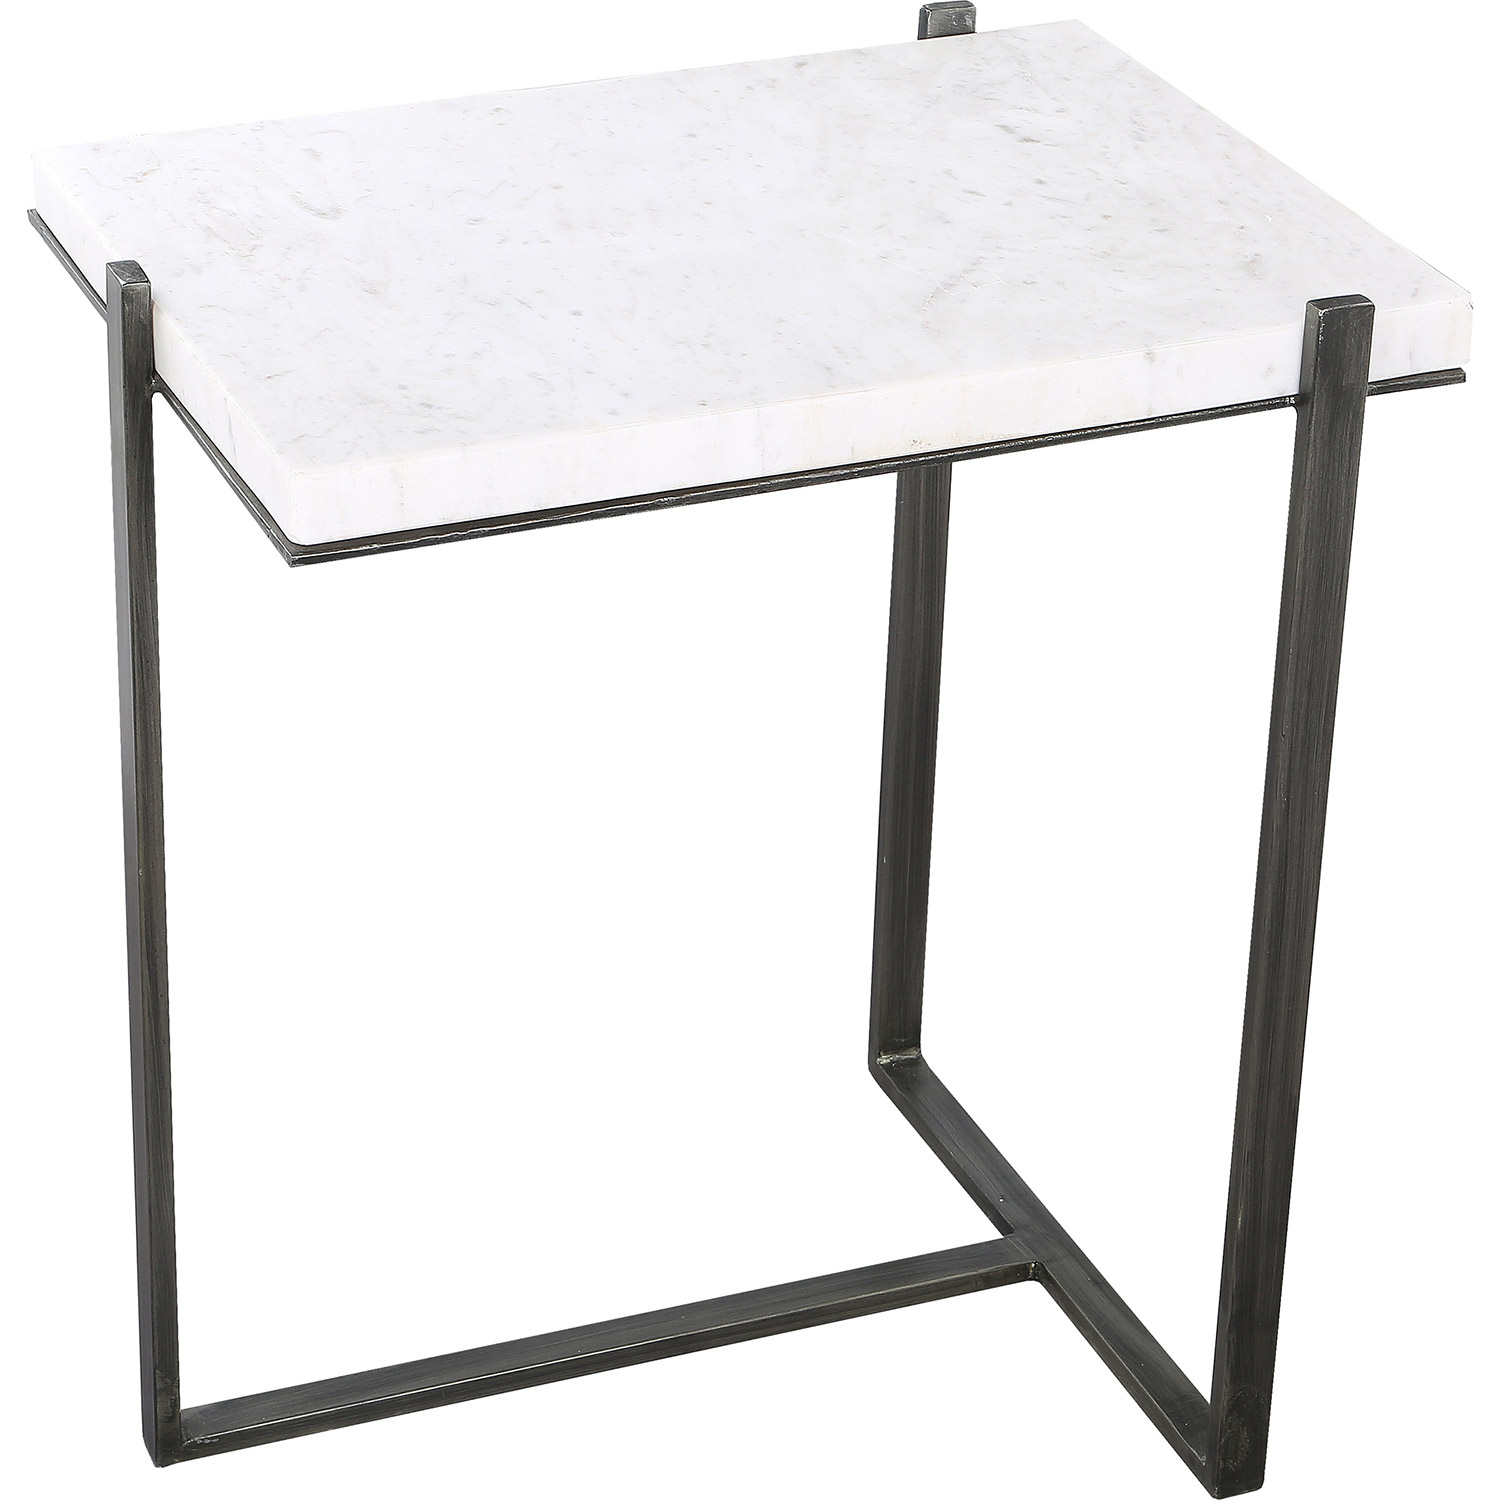 Ren-Wil Hyder Outdoor Accent Table - White Marble/Brush Gray